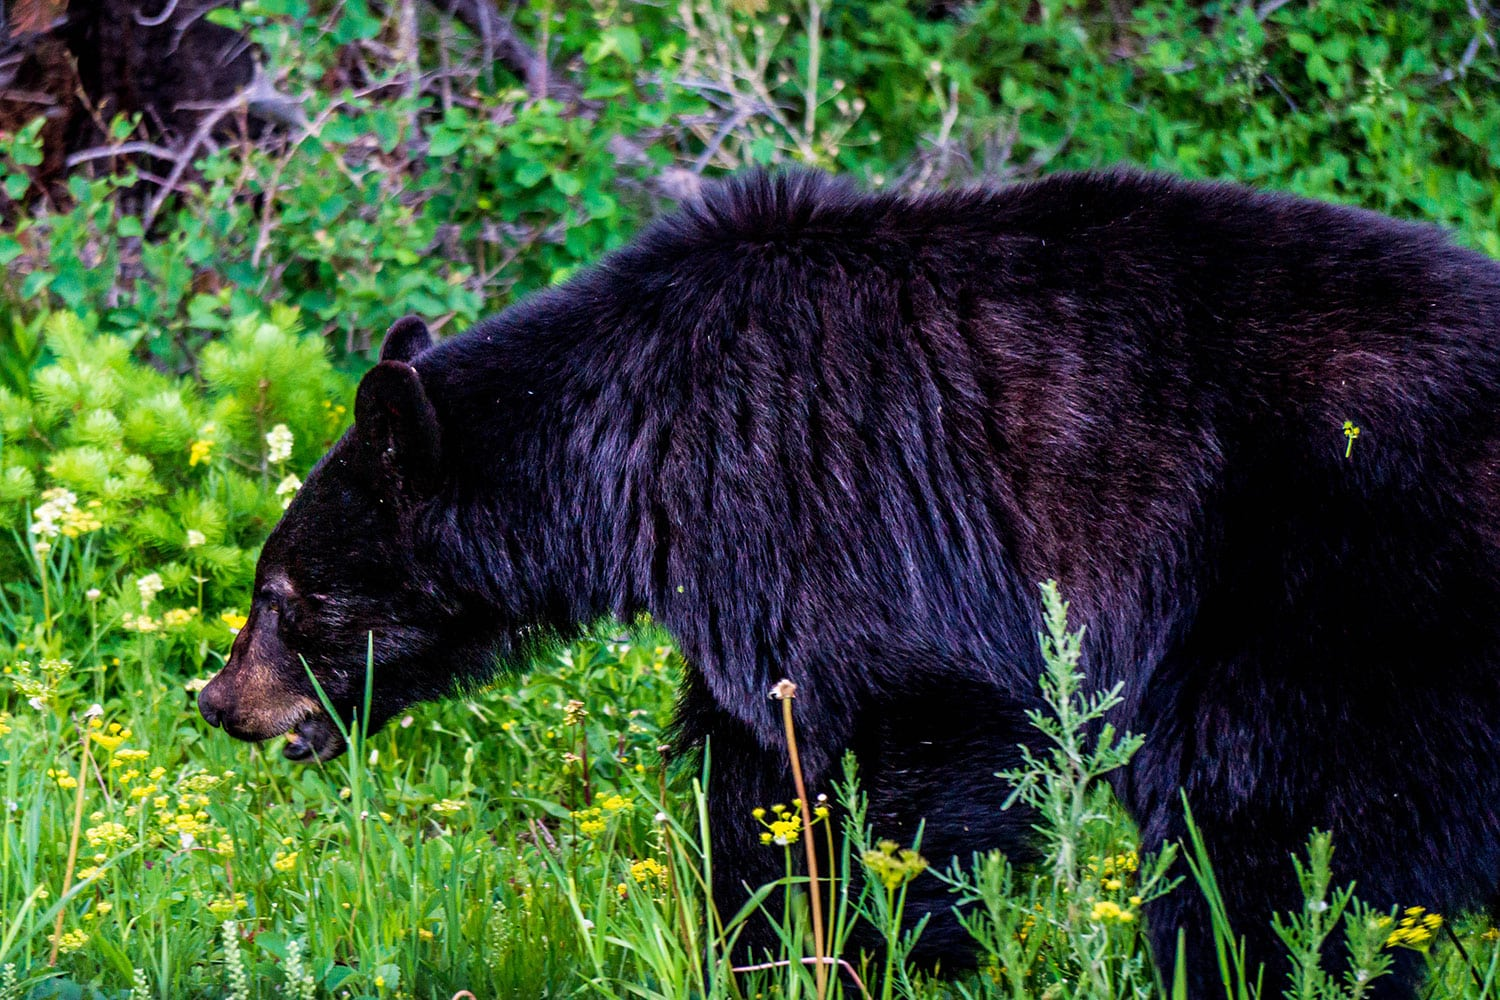 visiting glacier national park: a black bear meanders through the grass